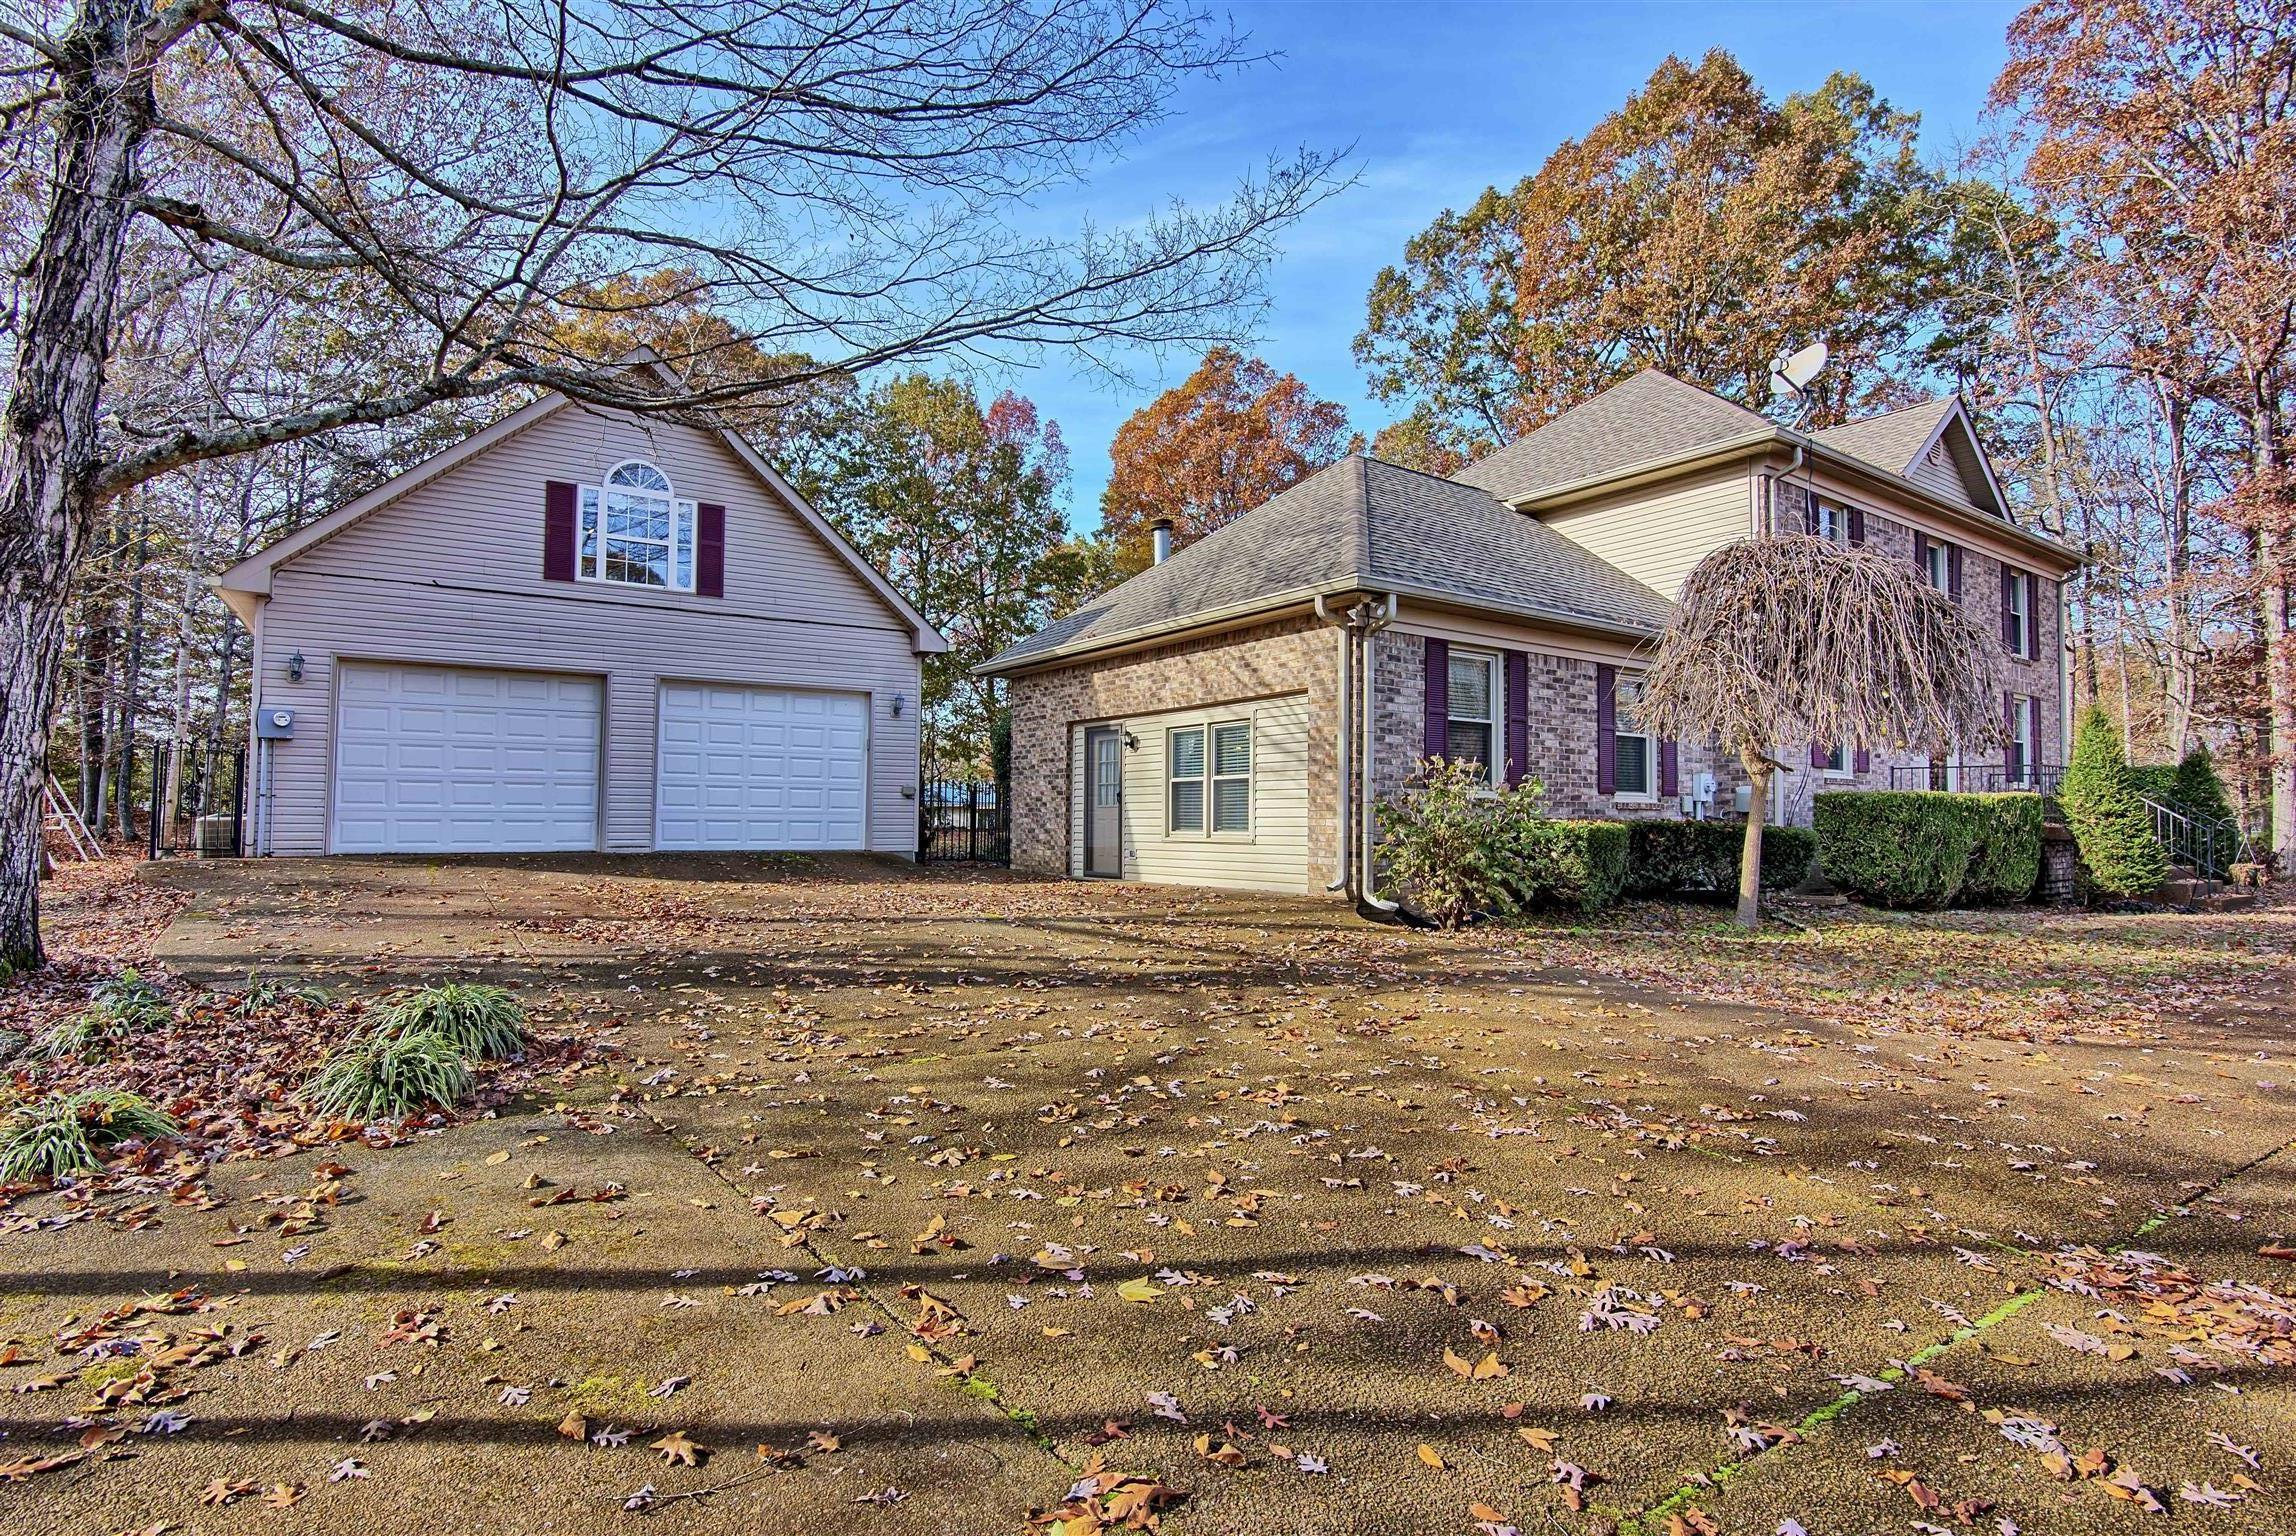 7104 Grammar Dr, Fairview in Williamson County County, TN 37062 Home for Sale